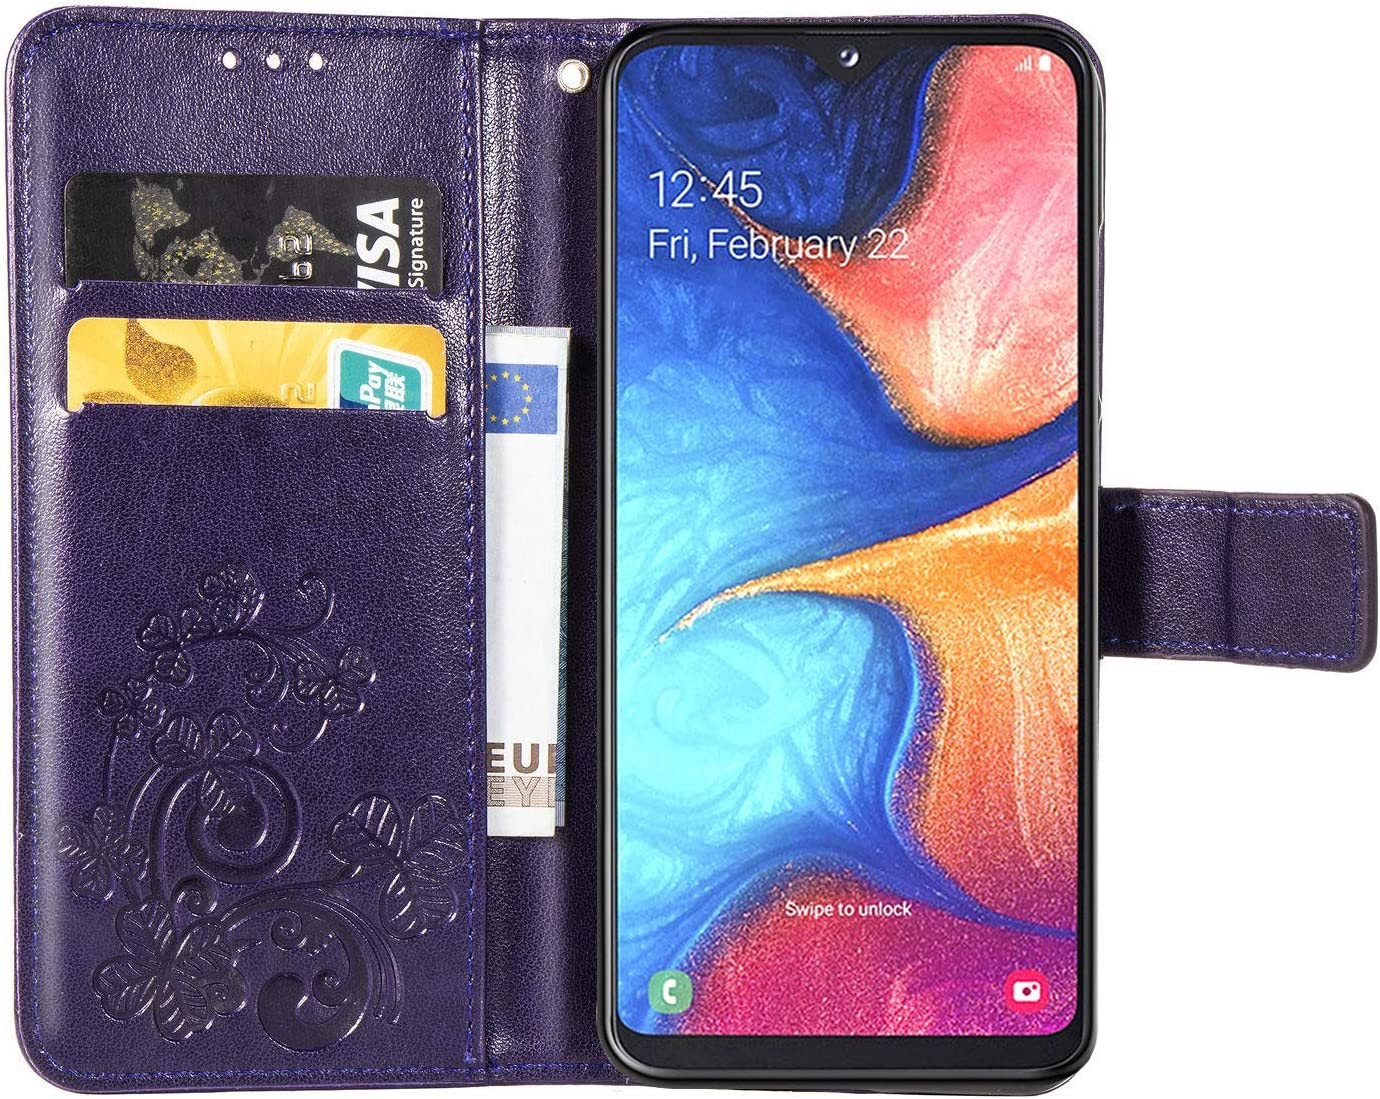 Premium PU Leather Folio Flip Cover Vogue Business with Kickstand and Credit Slots Wallet Phone Case for Samsung Galaxy A10S Retro Blue HX ISADENSER Galaxy A10S Wallet Case Samsung A10S Case